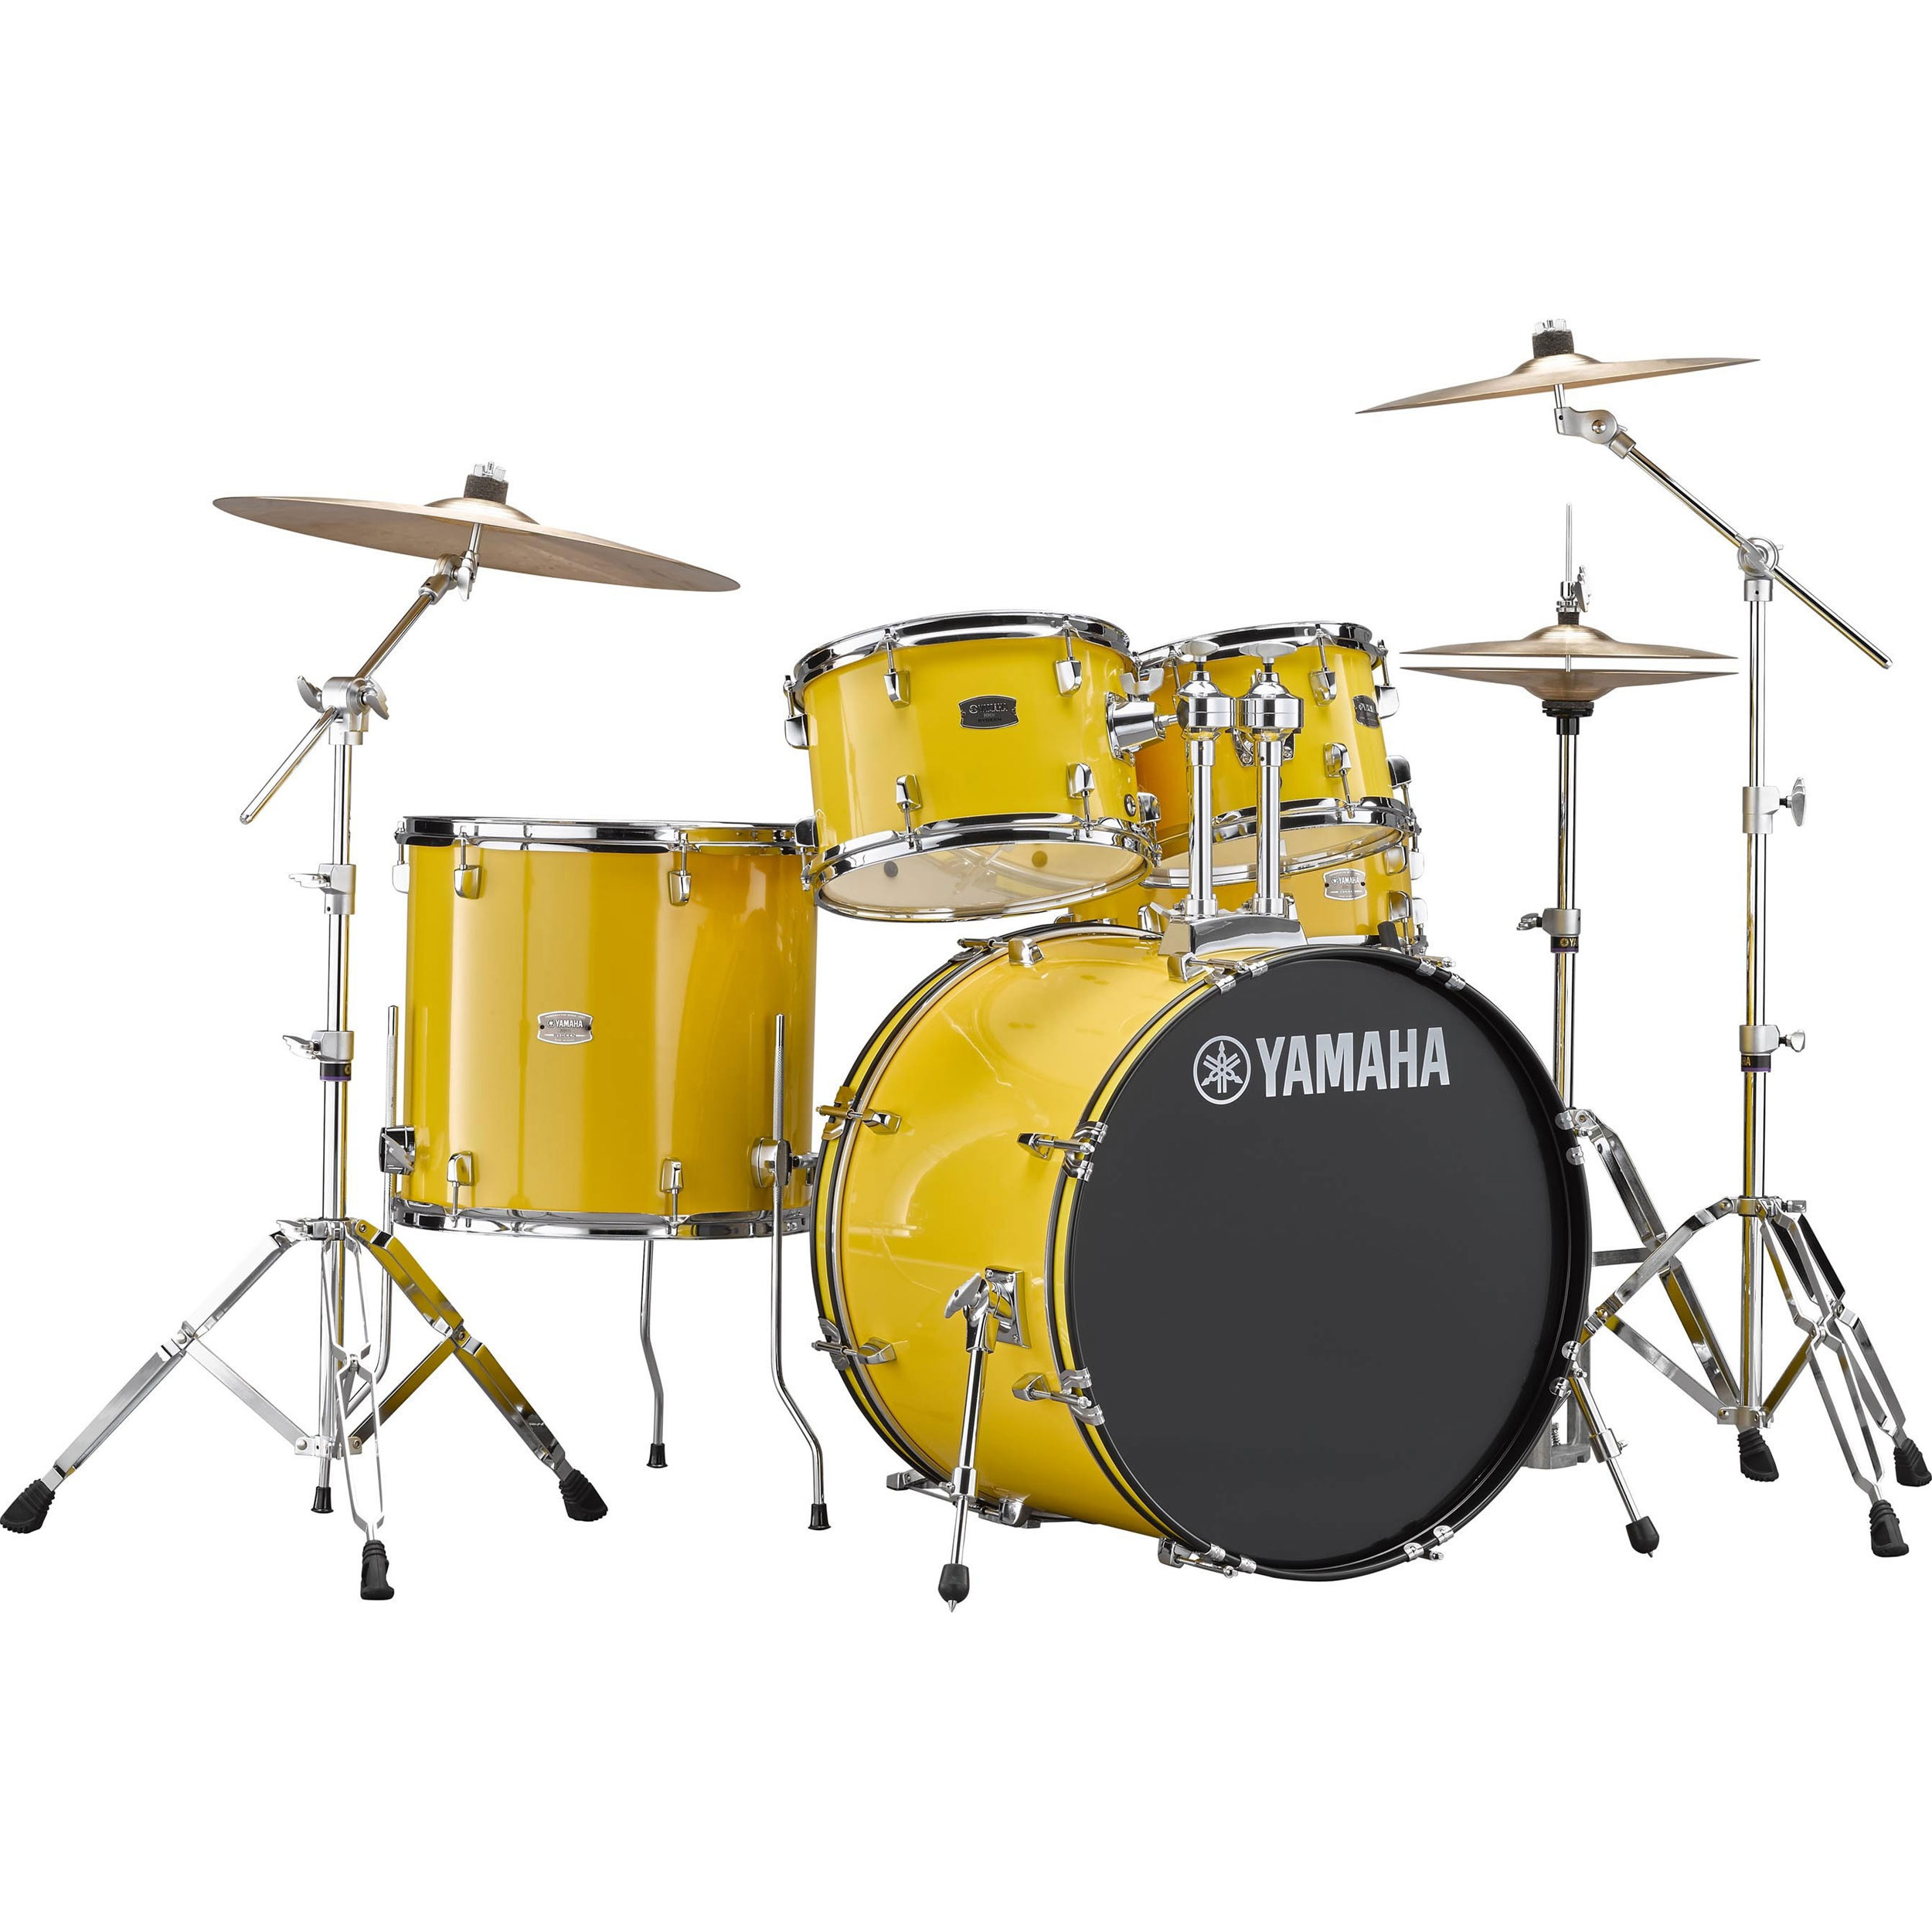 "Yamaha Rydeen 5-Piece Drum Set with Hardware & Cymbals (20"" Bass, 10/12/14"" Toms, 14"" Snare)"